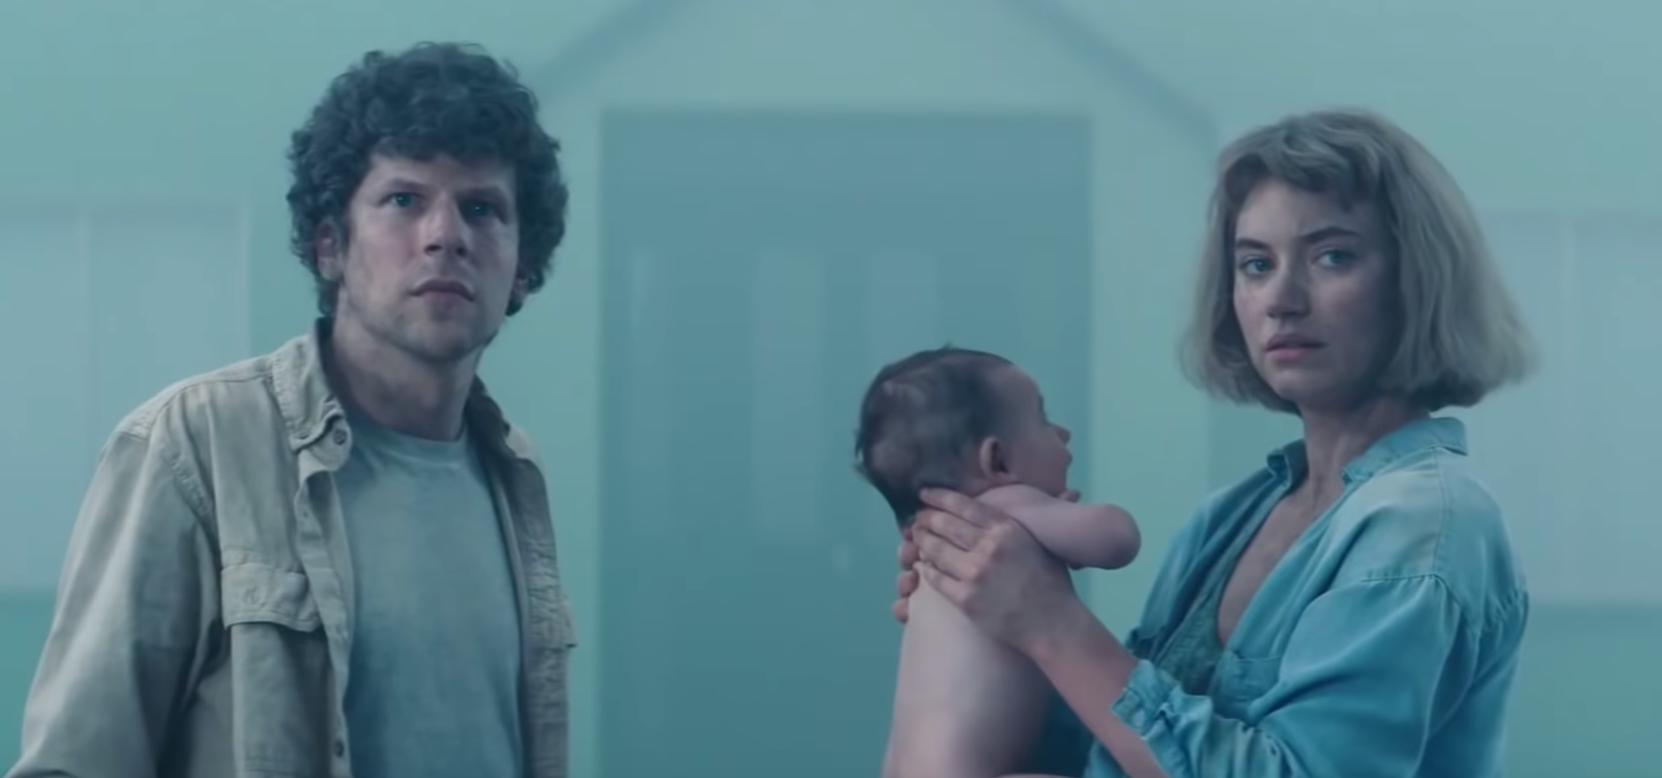 Jesse Eisenberg And Imogen Poots Are Imprisoned In A Neighborhood, Raising A Boy They Do Not Want In The 'Vivarium' Trailer